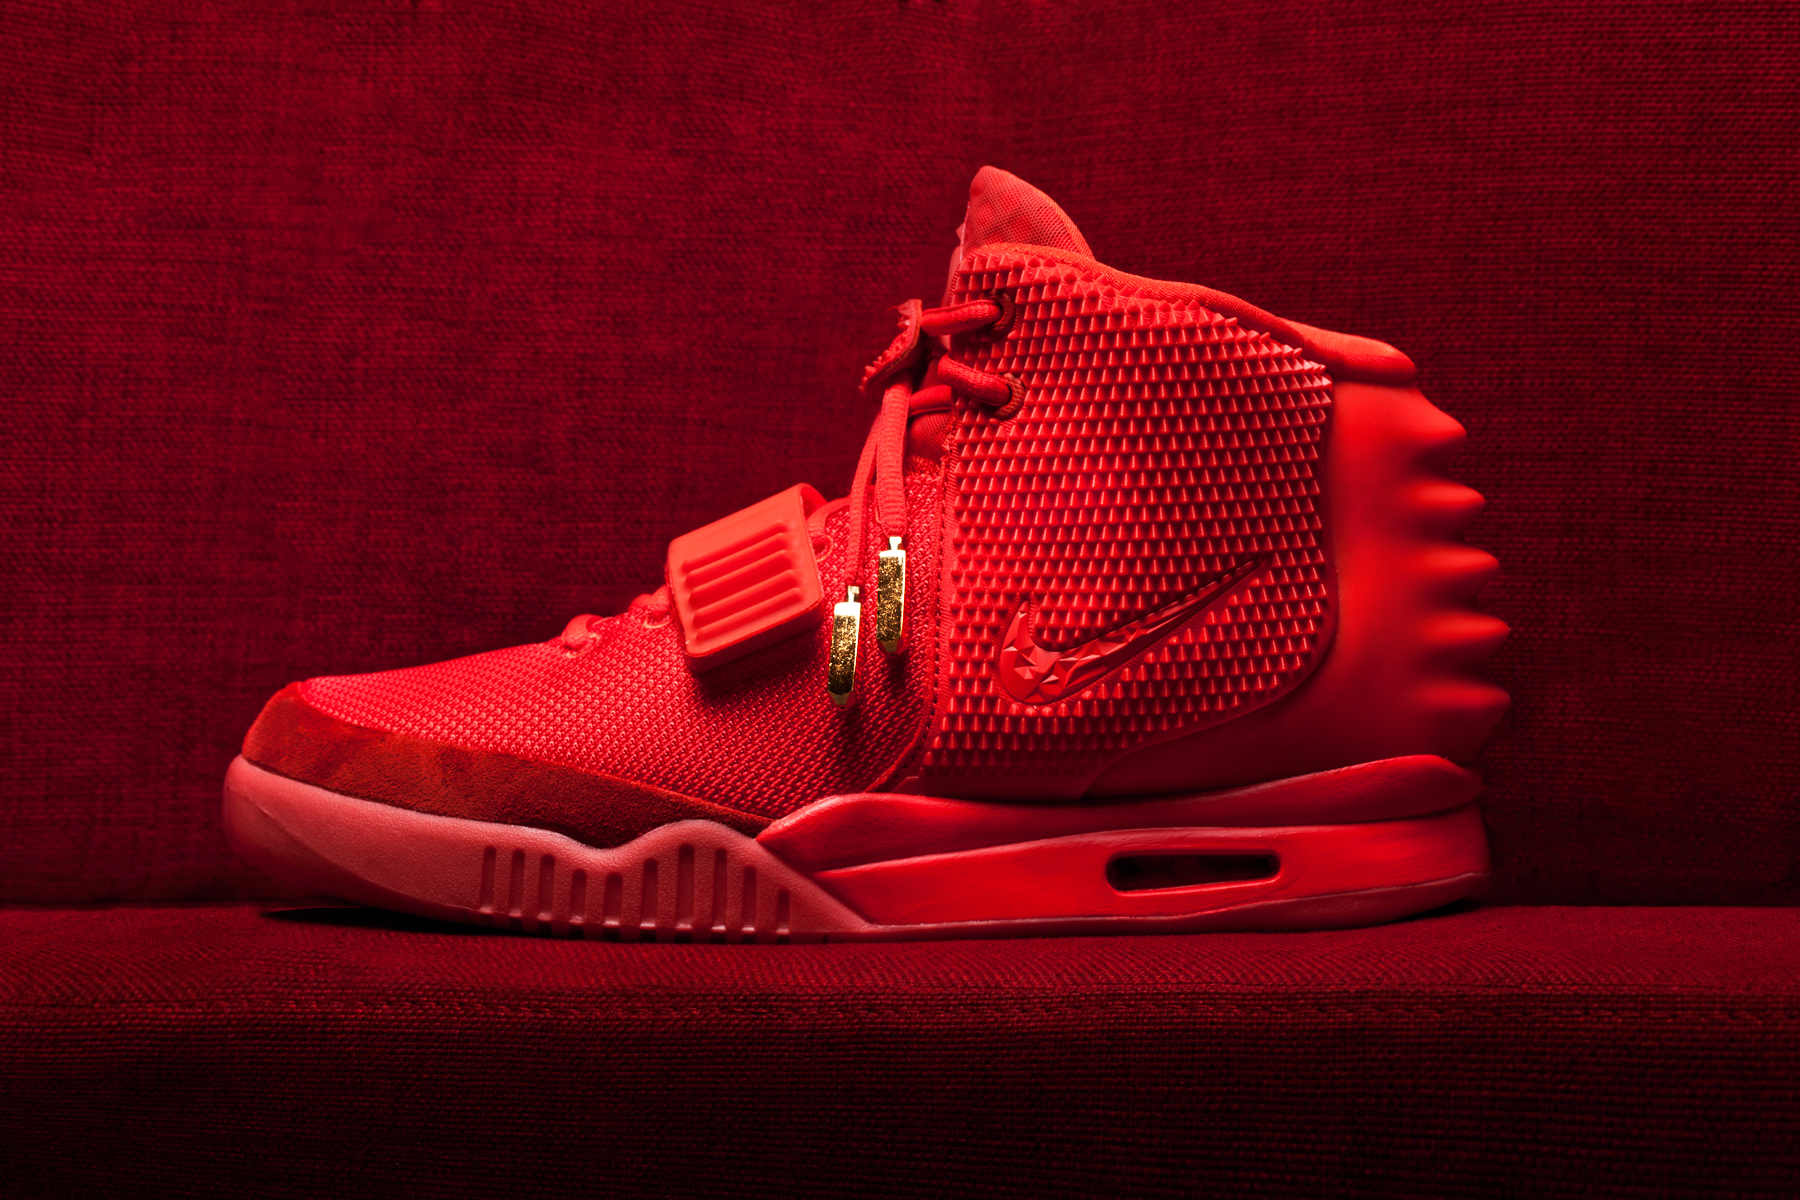 8cb4add0e99fb ... nike  red  kanye  west  adidas  boost  sneakers  october. Reselling the  Yeezy 2 Speculating Prices with Ben Baller and Flight 1800x1200